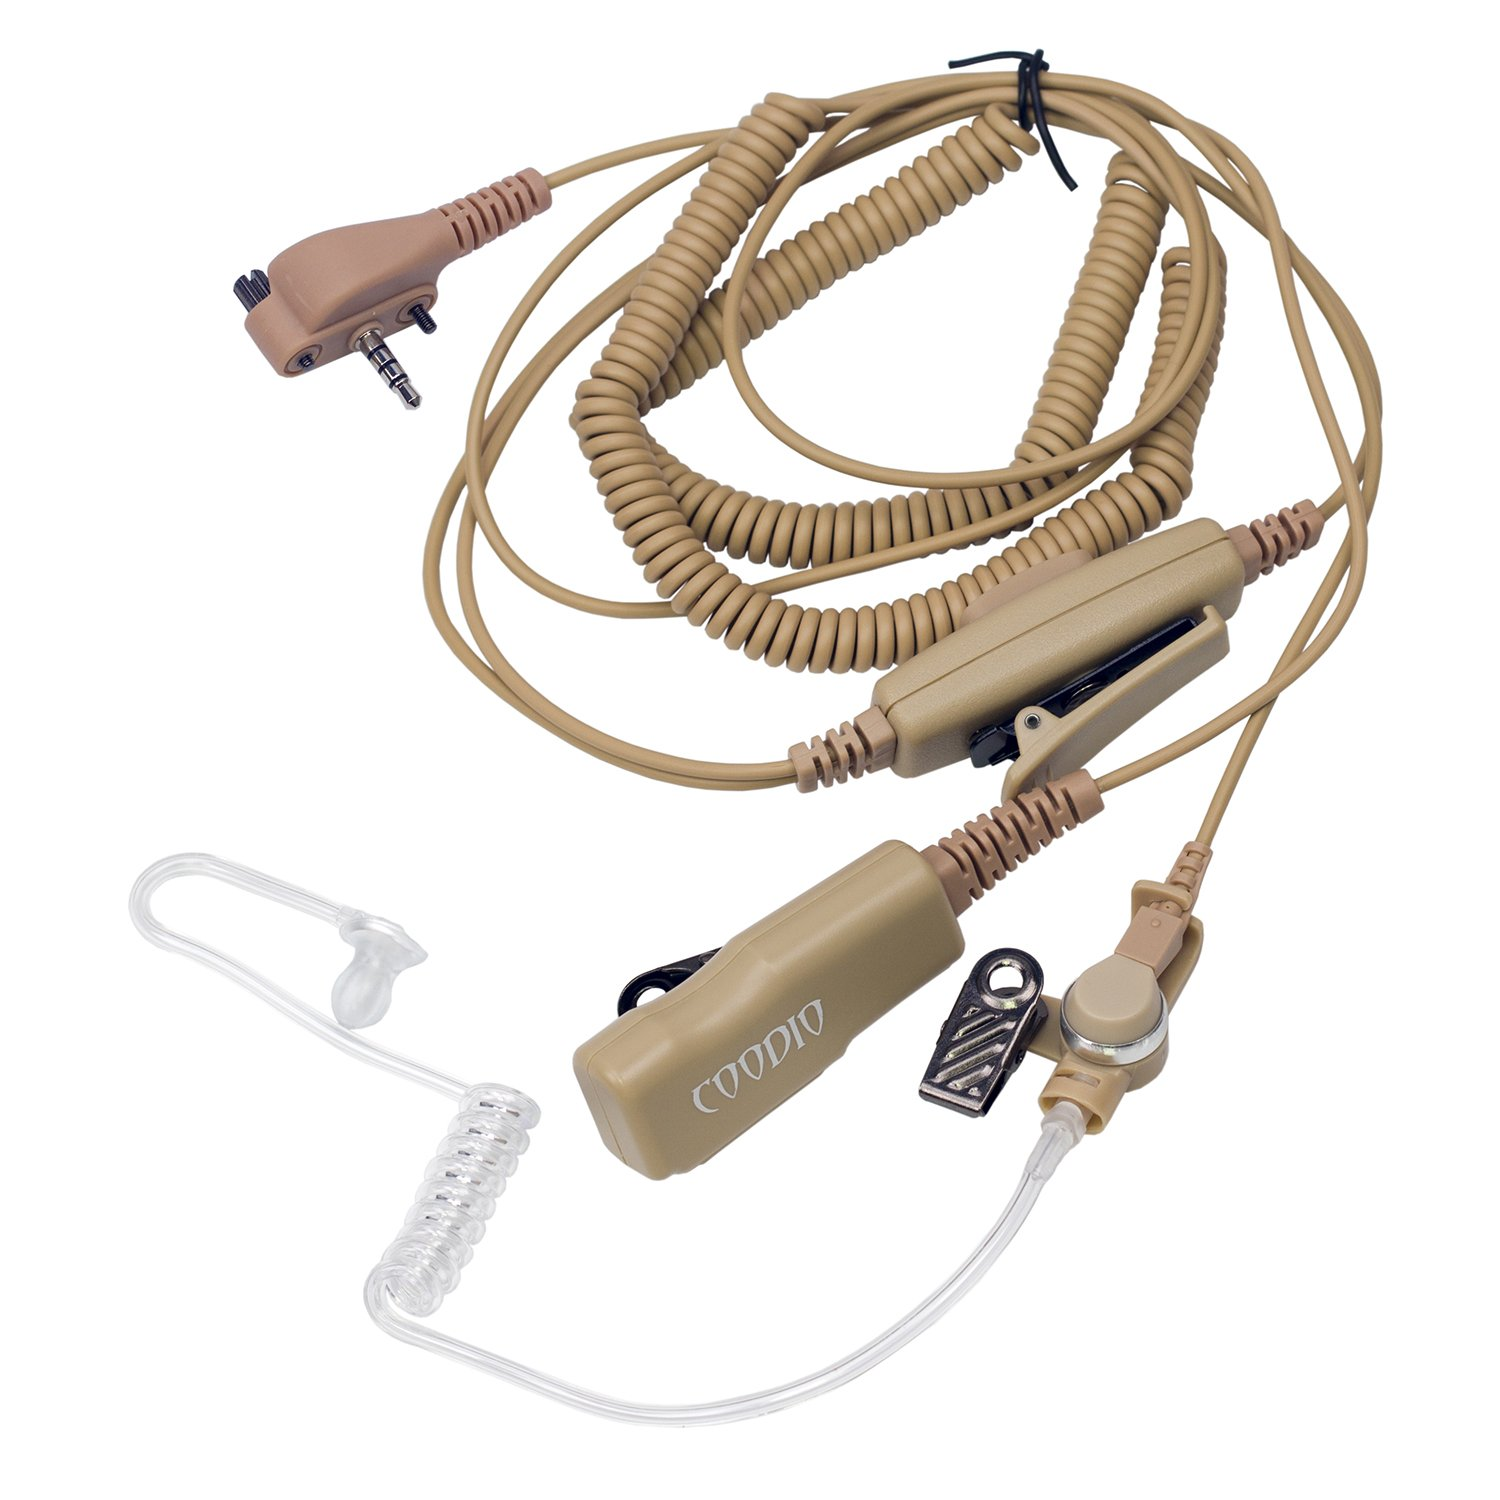 Double PTT Beige Coodio Superior Surveillance Earpiece Security Headset Bodyguard FBI VX-241 2 Way Radio CDO-Y241-012A3-2PTT-BG Mic Microphone For Vertex Standard EVX-531 Covert Acoustic Tube